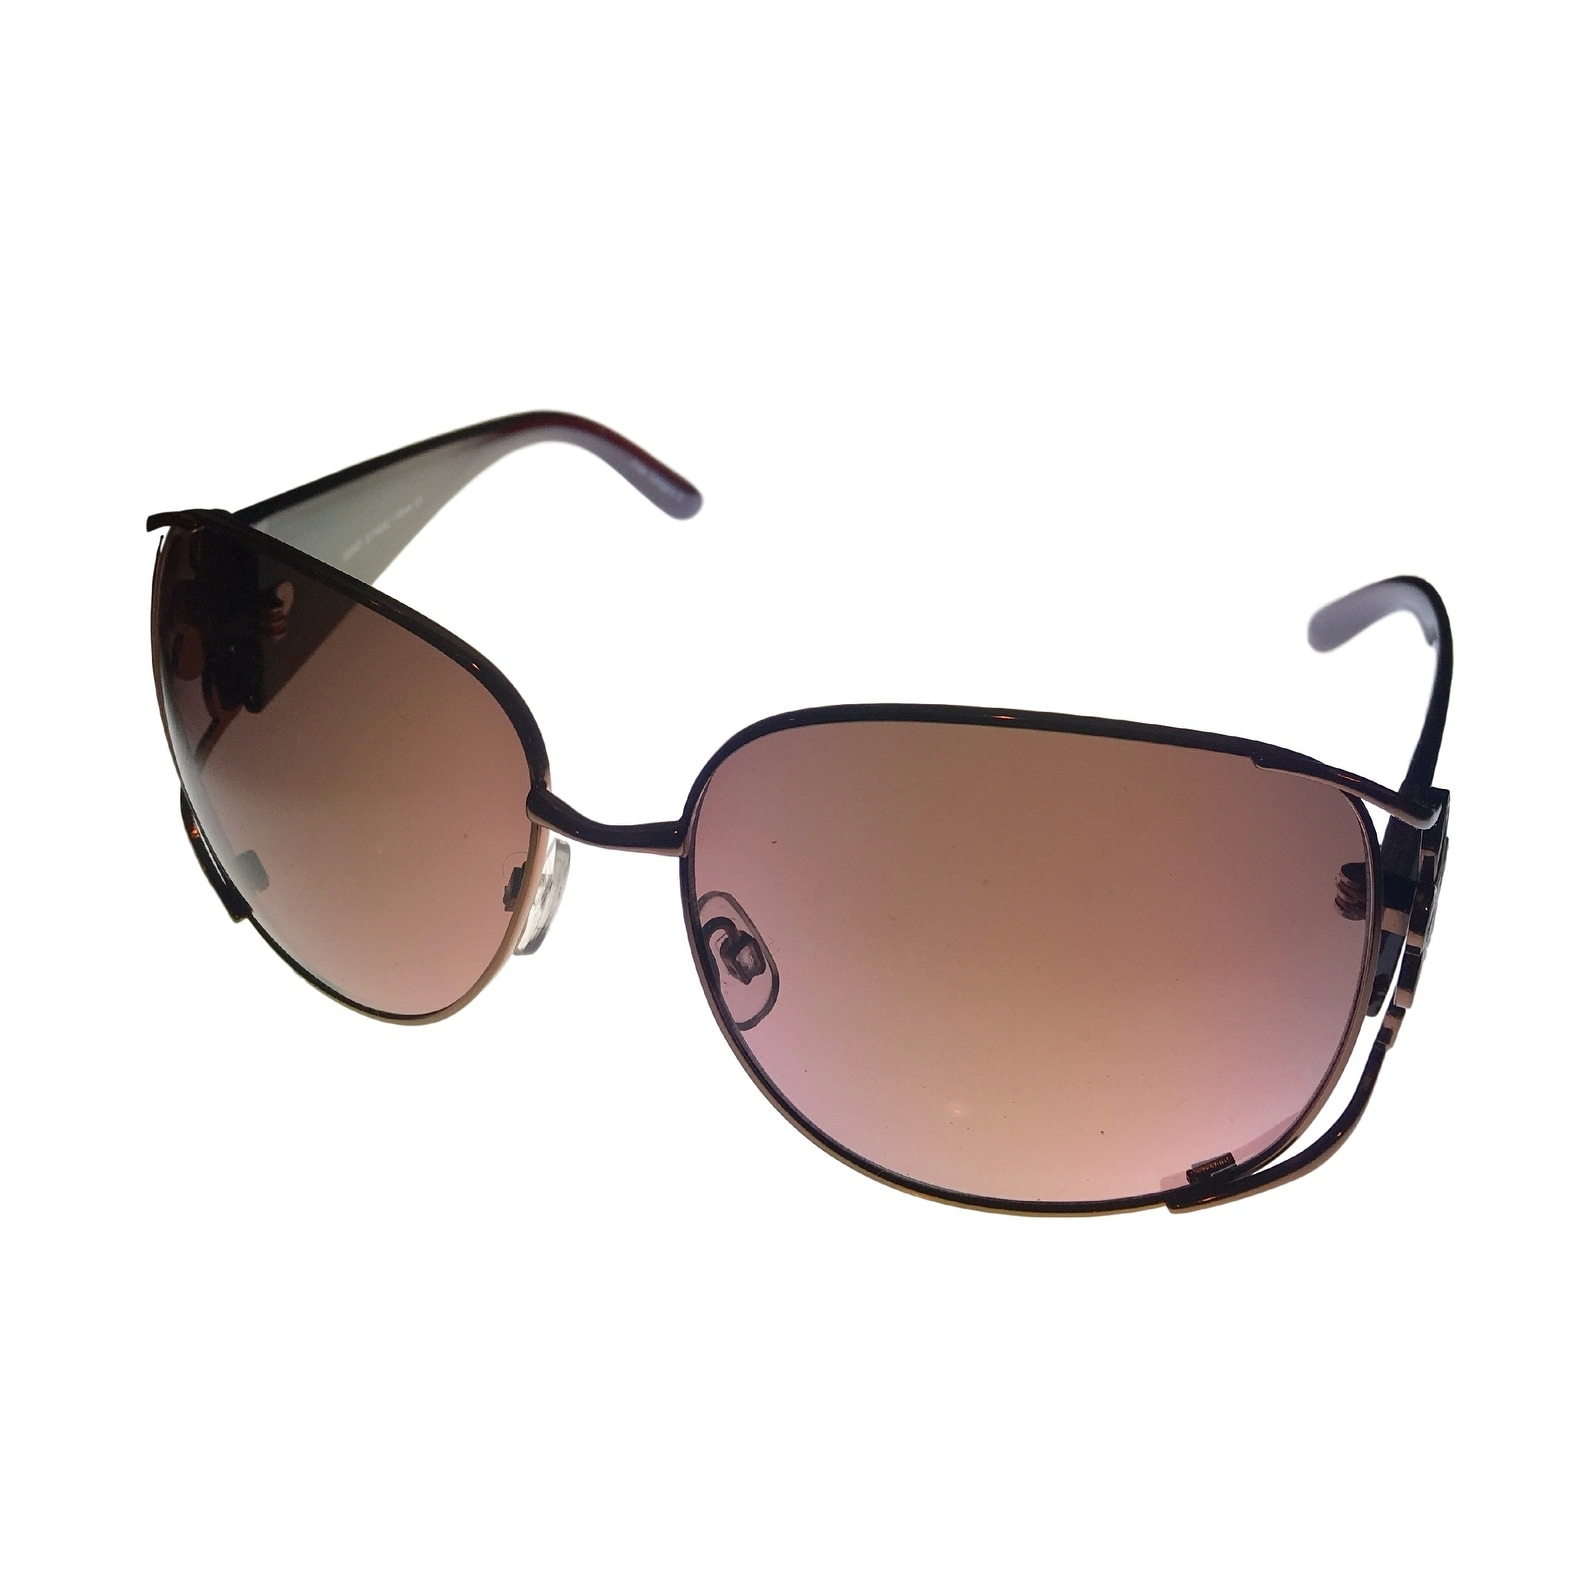 Esprit Womens Sunglass 19282 535 Copper Modified Rectangle, Brown Gradient Lens - Thumbnail 0